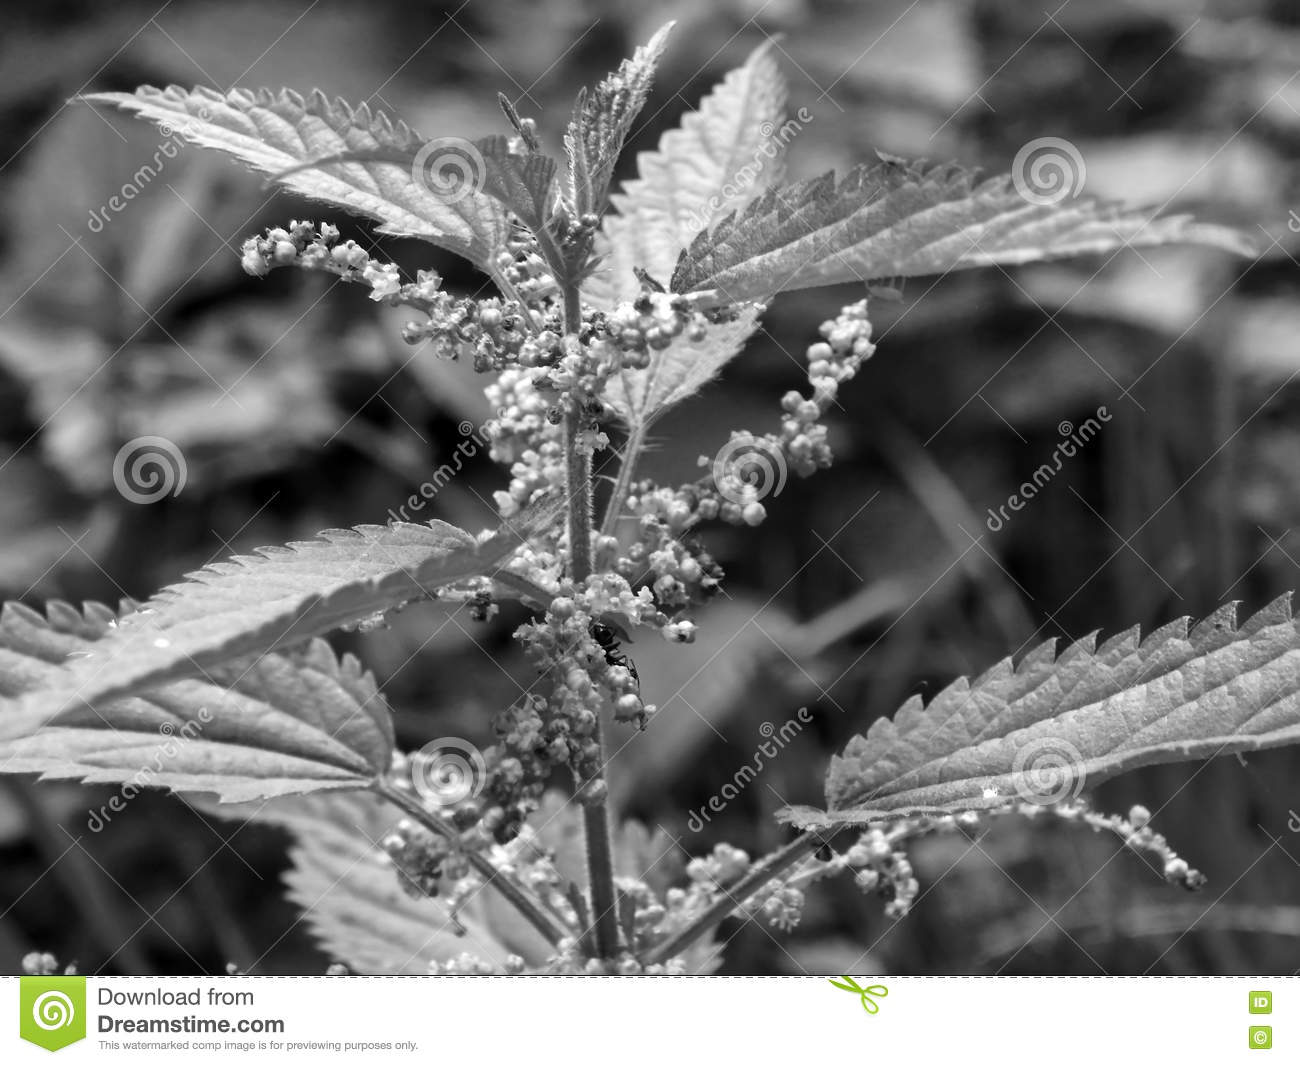 Nettle With Flowers On Black And White Image Stock Photo Image Of